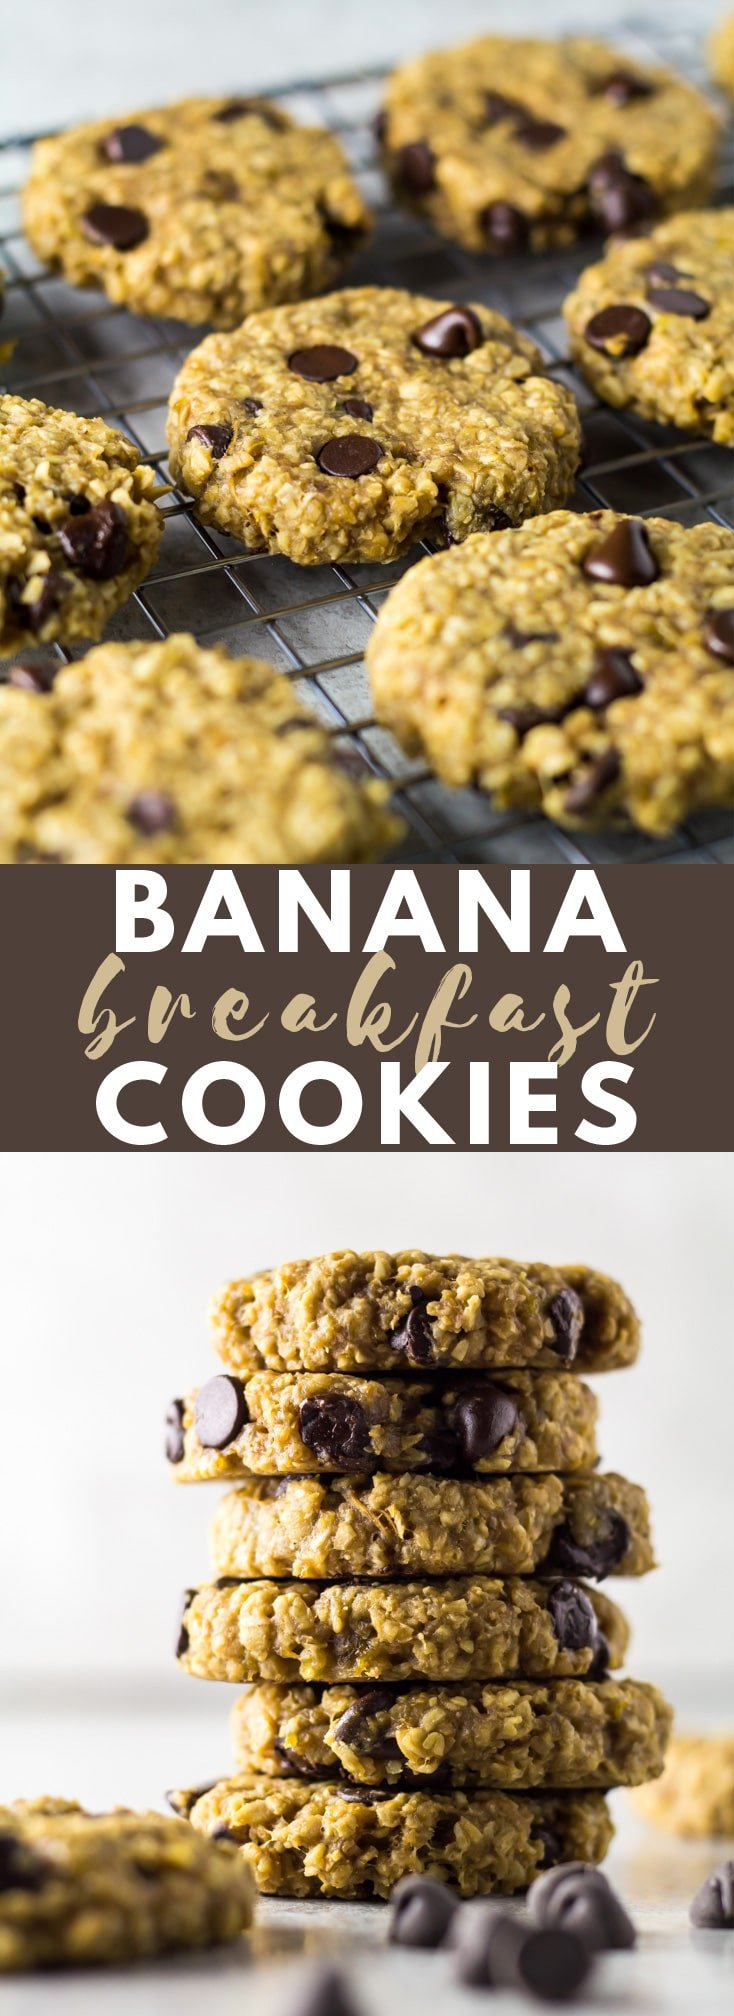 Banana Breakfast Cookies - Deliciously soft, chewy, and healthy banana cookies that are loaded with oats, peanut butter, and chocolate chips. Perfect for a sweet breakfast or a quick snack!